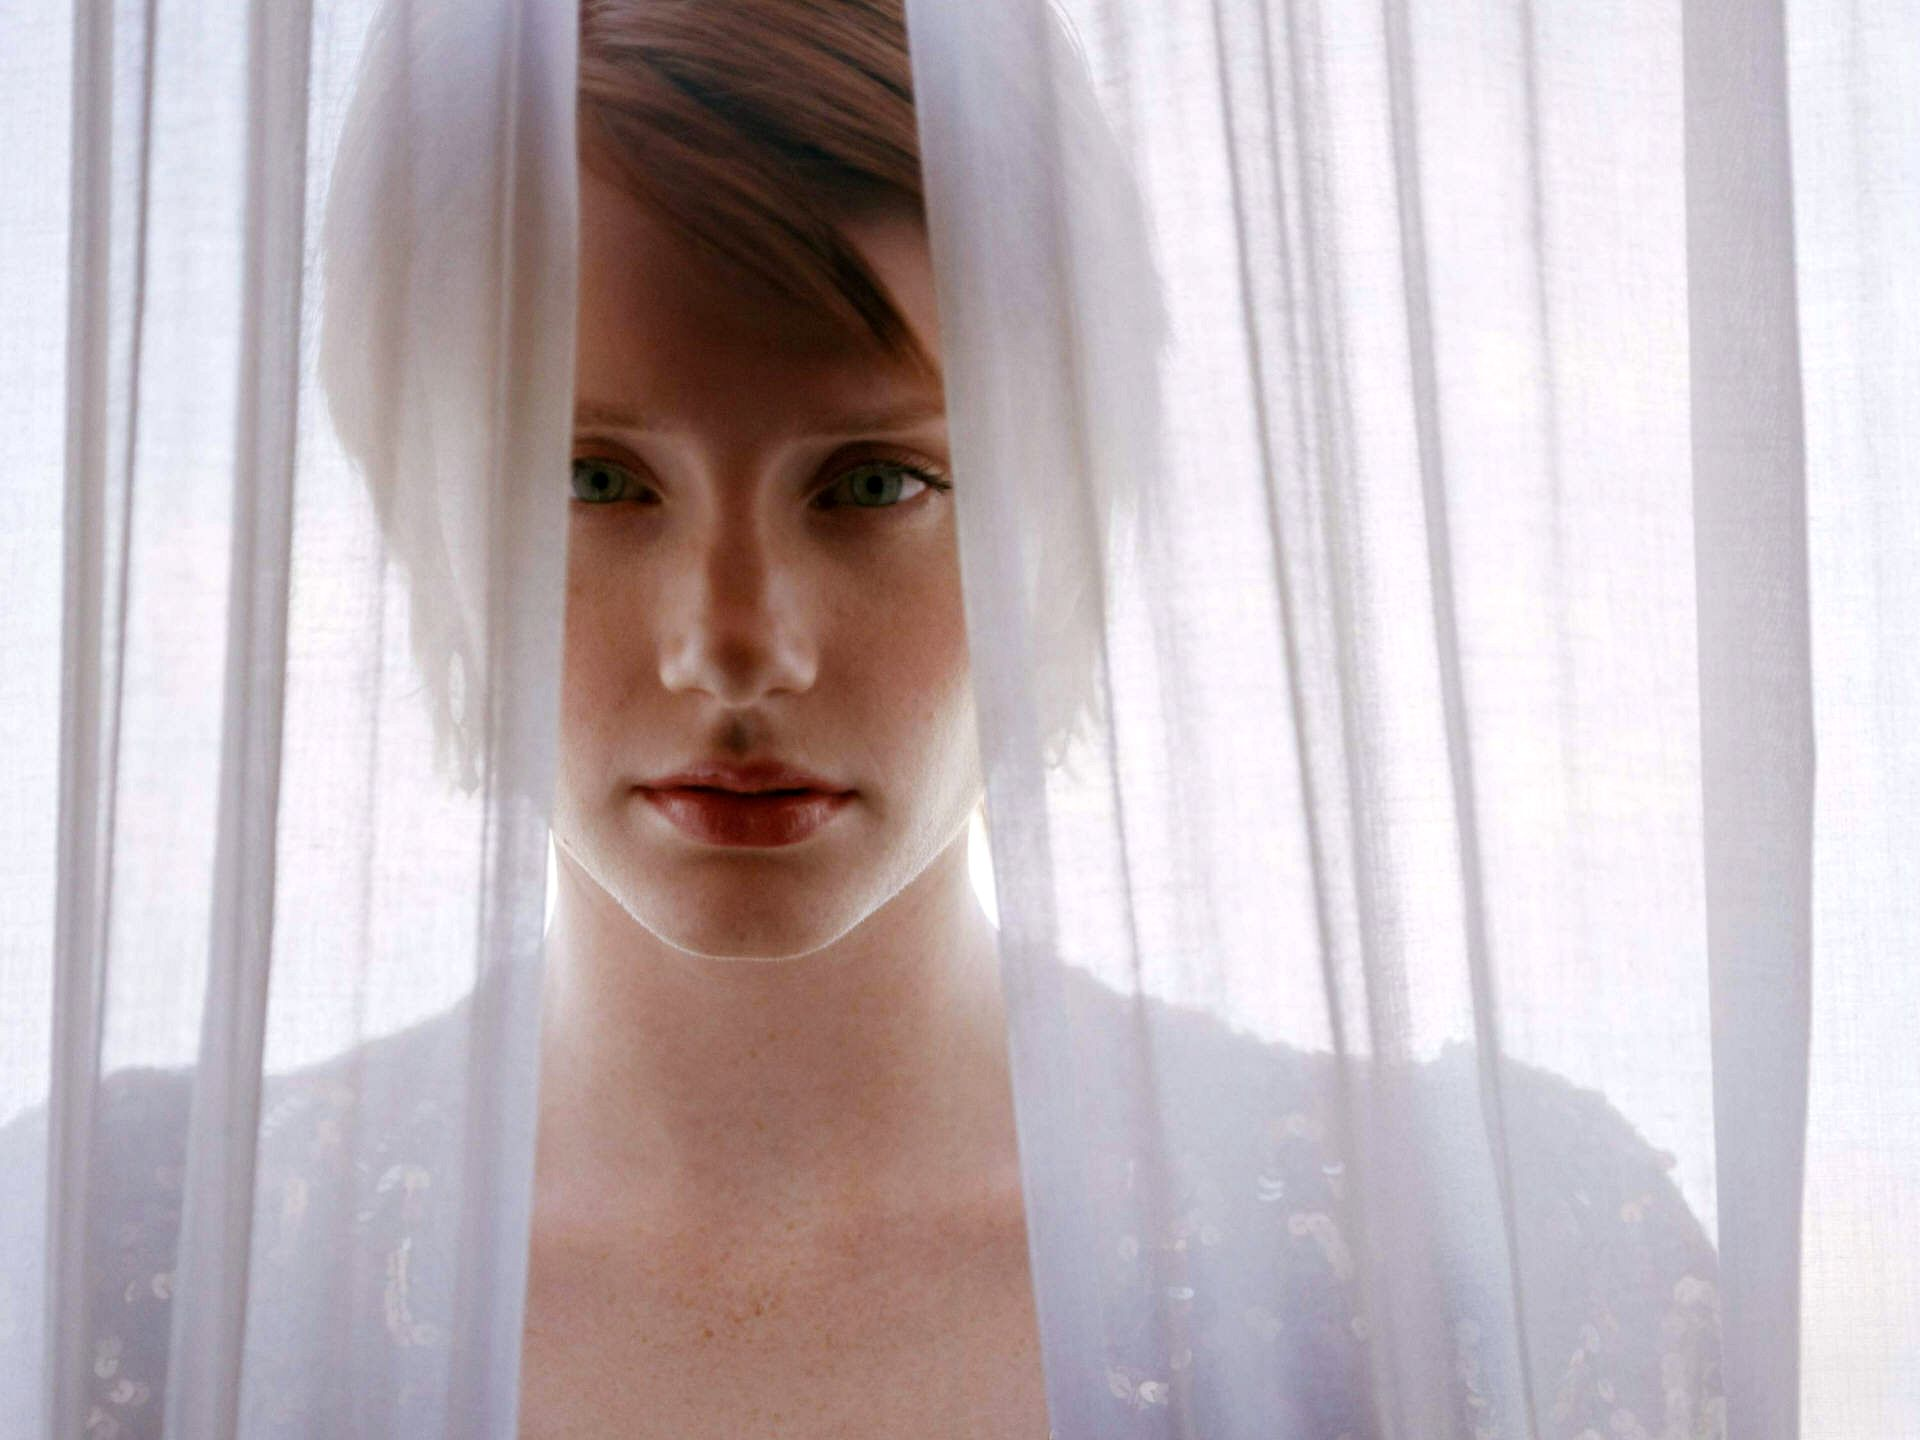 Bryce Dallas Howard Res: 1920x1440 / Size:173kb. Views: 31865